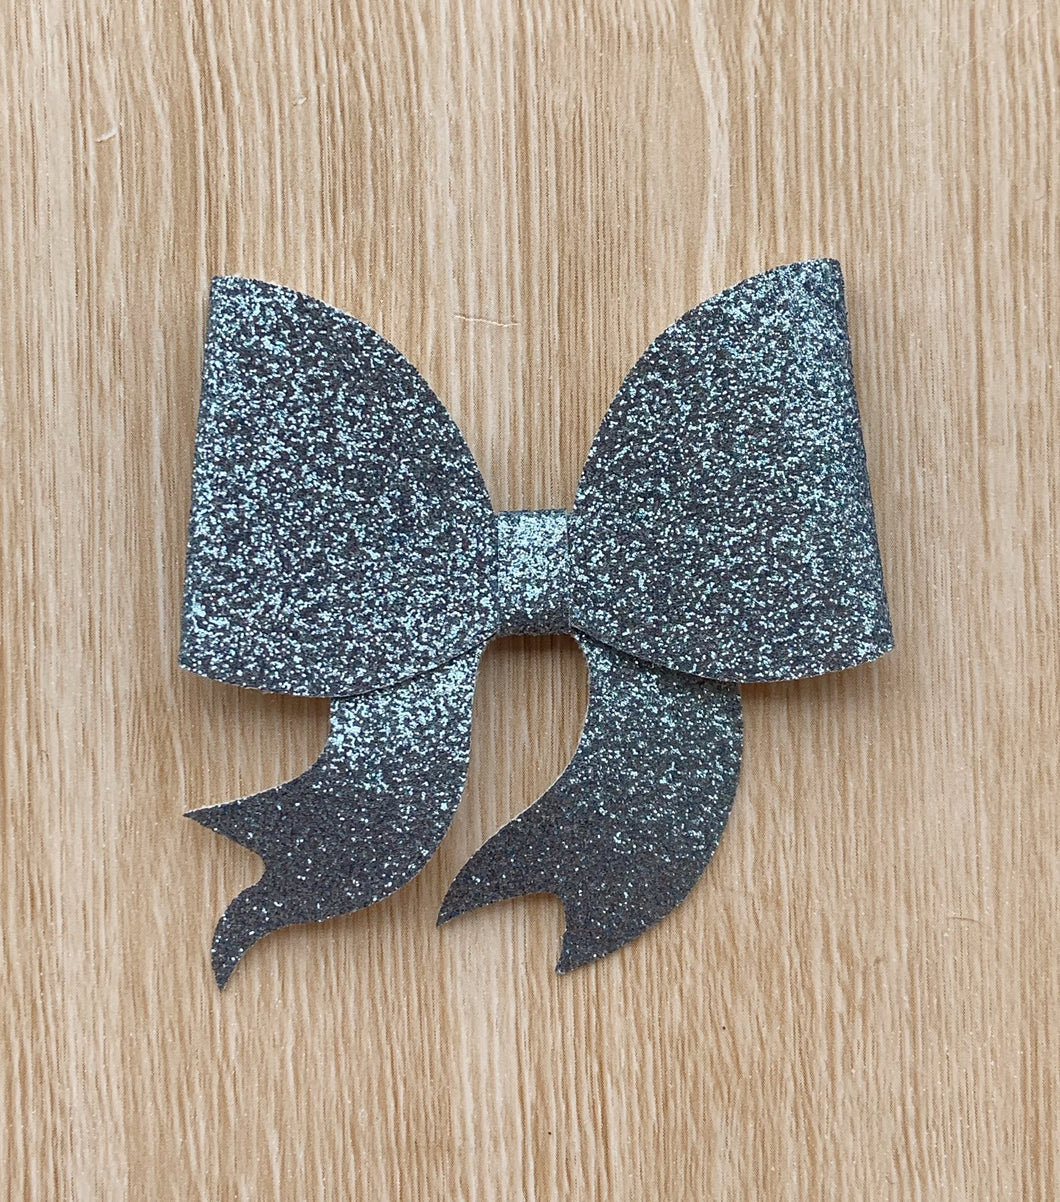 Bow31 glitter bow, leatherette bow, fringe clip, butterfly bow, personalised bow, rainbow bow, dolly hair bow, floral bow, shimmer bow, pretty bow , Bow Handmade Hairbow, handmade hair accessories, Sweet Adalyn Sweet Adalyn